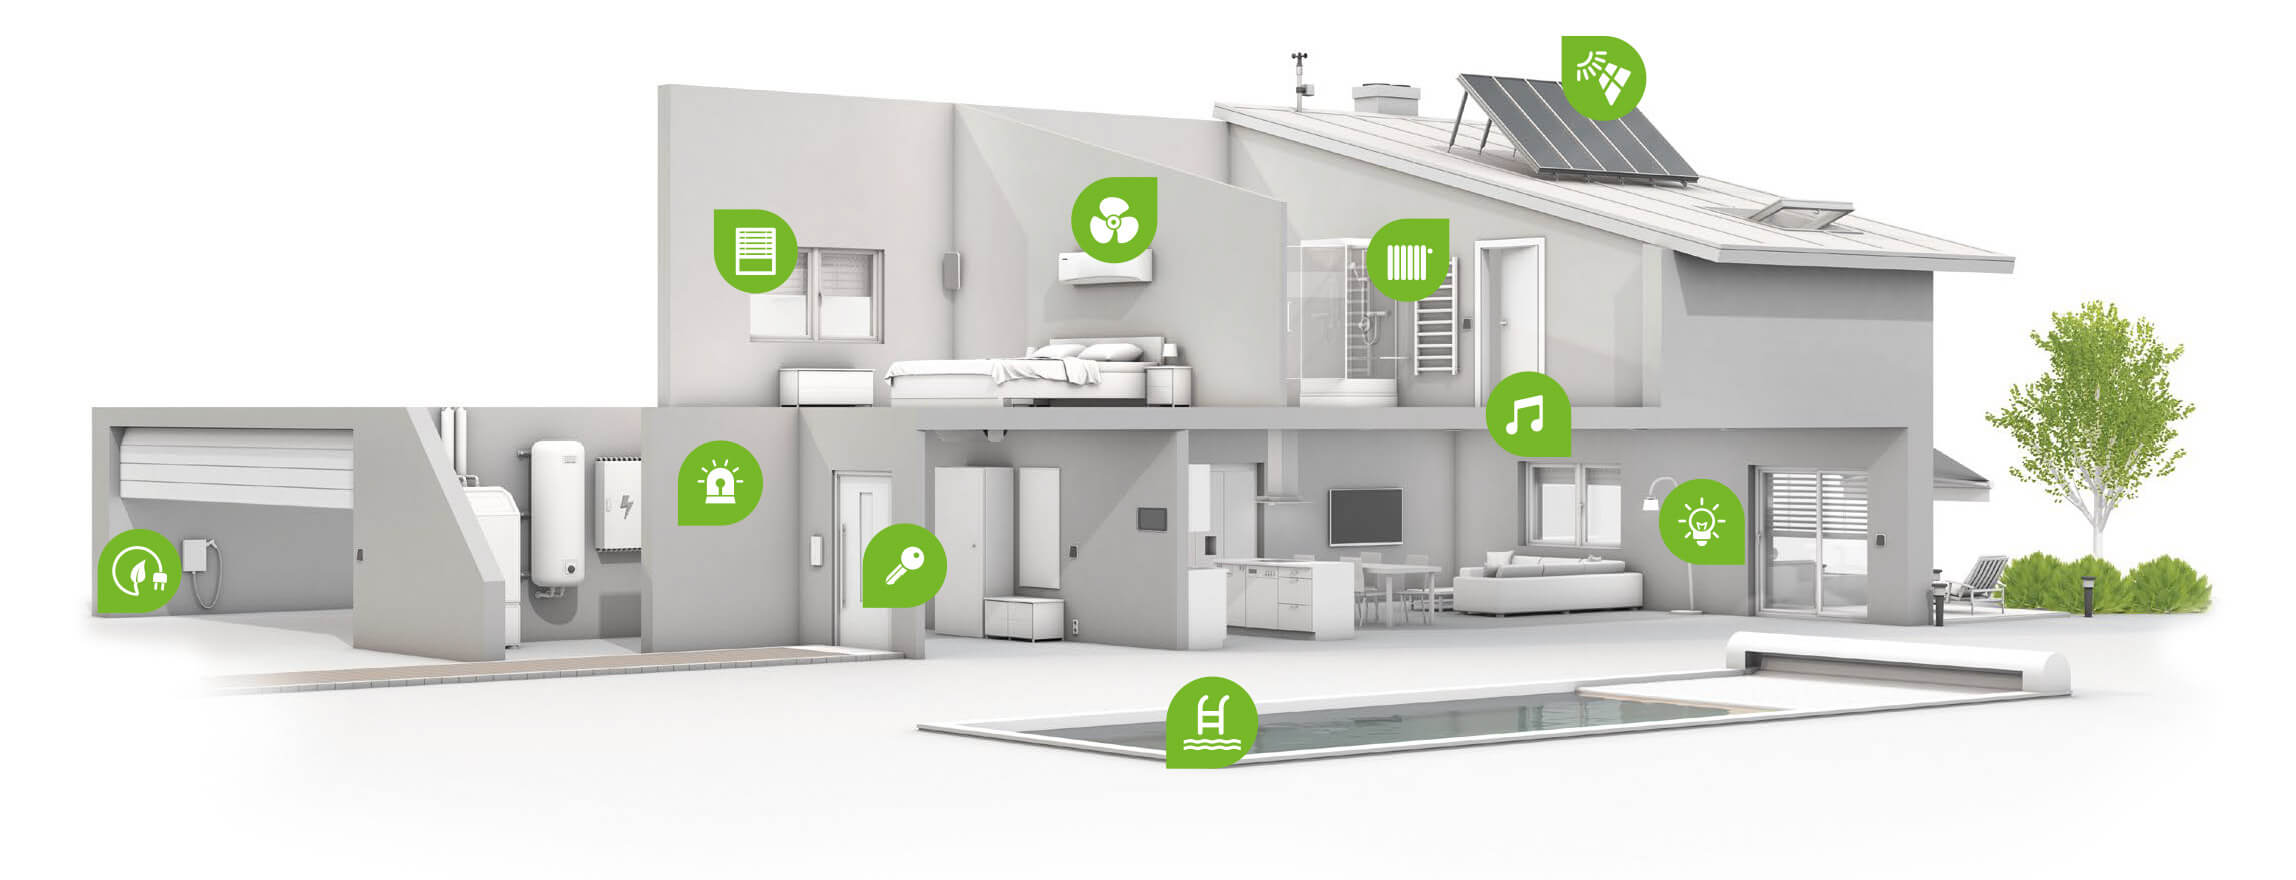 3-D model of smart home with function labels for each room